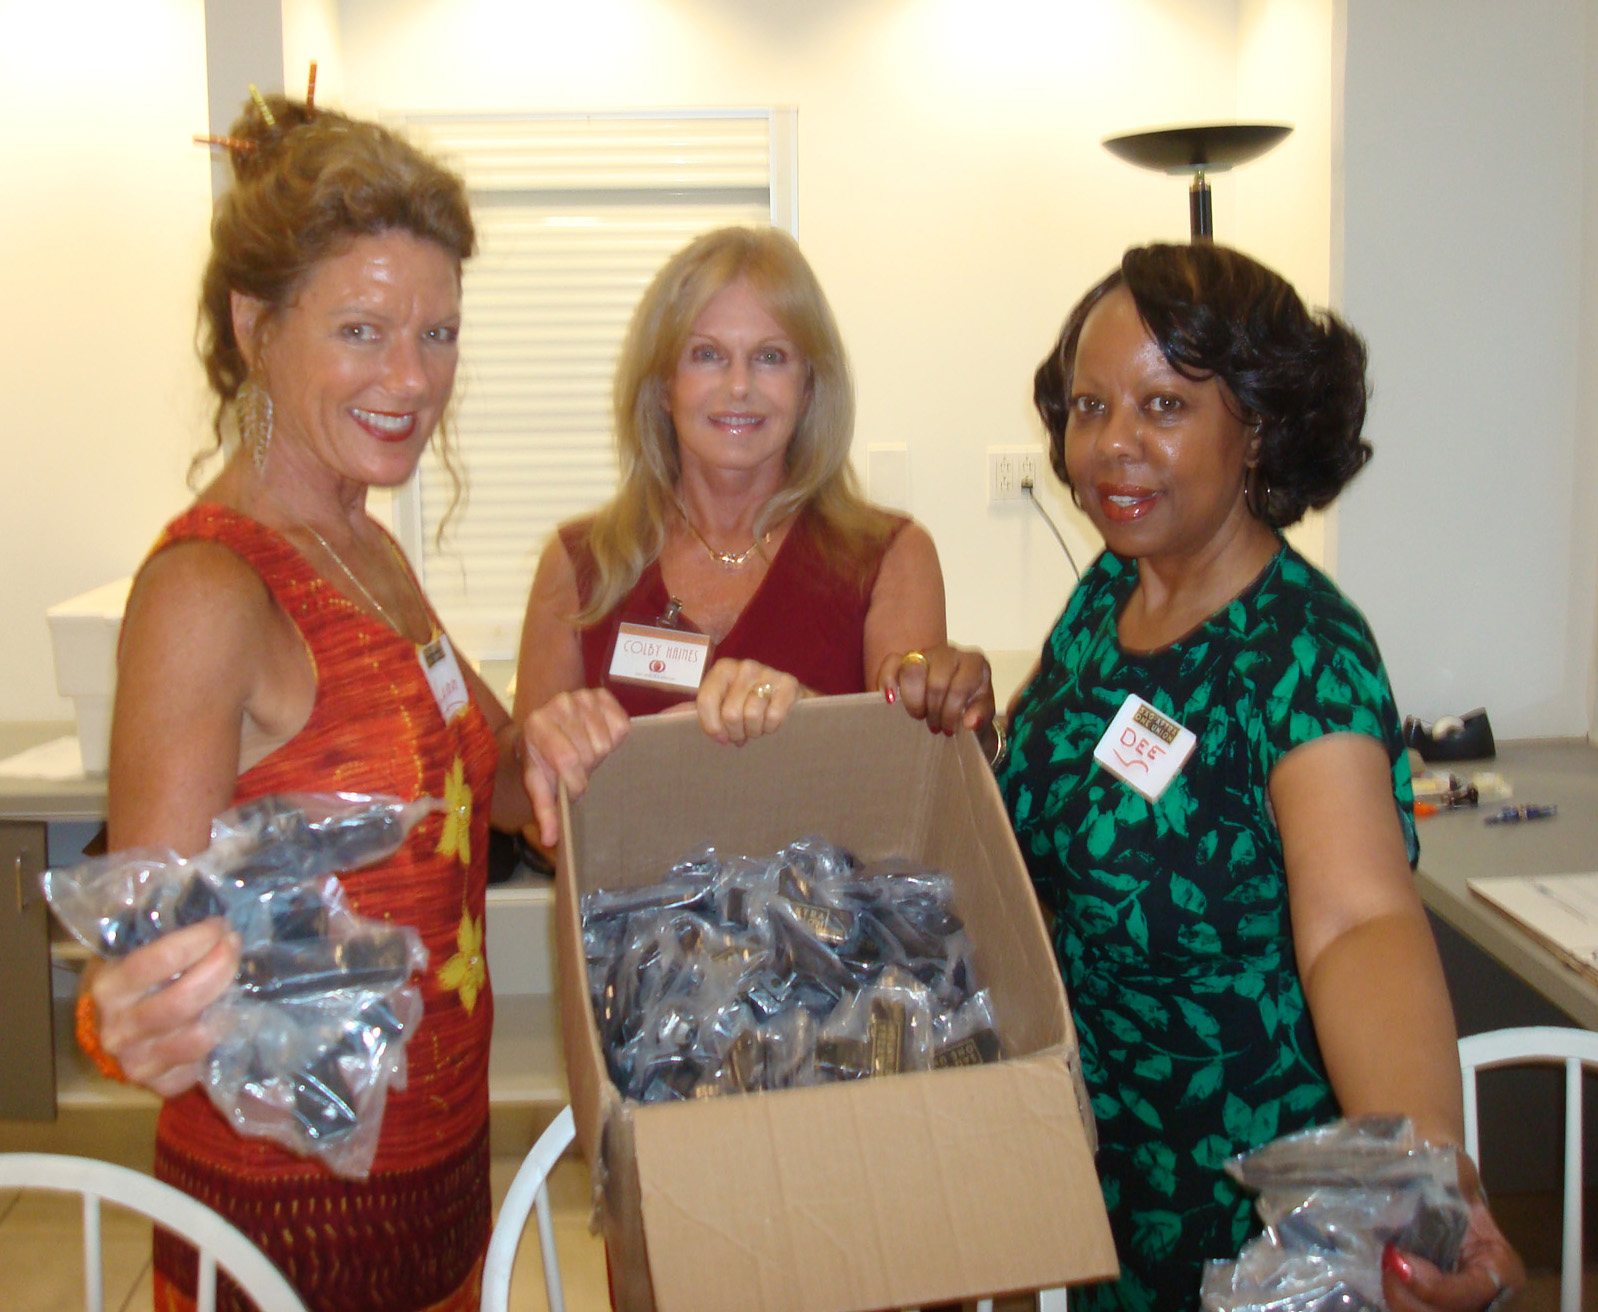 Lynn Mcree, Colby Haines and Dee Rogers help set up SAG-AFTRA August mixer